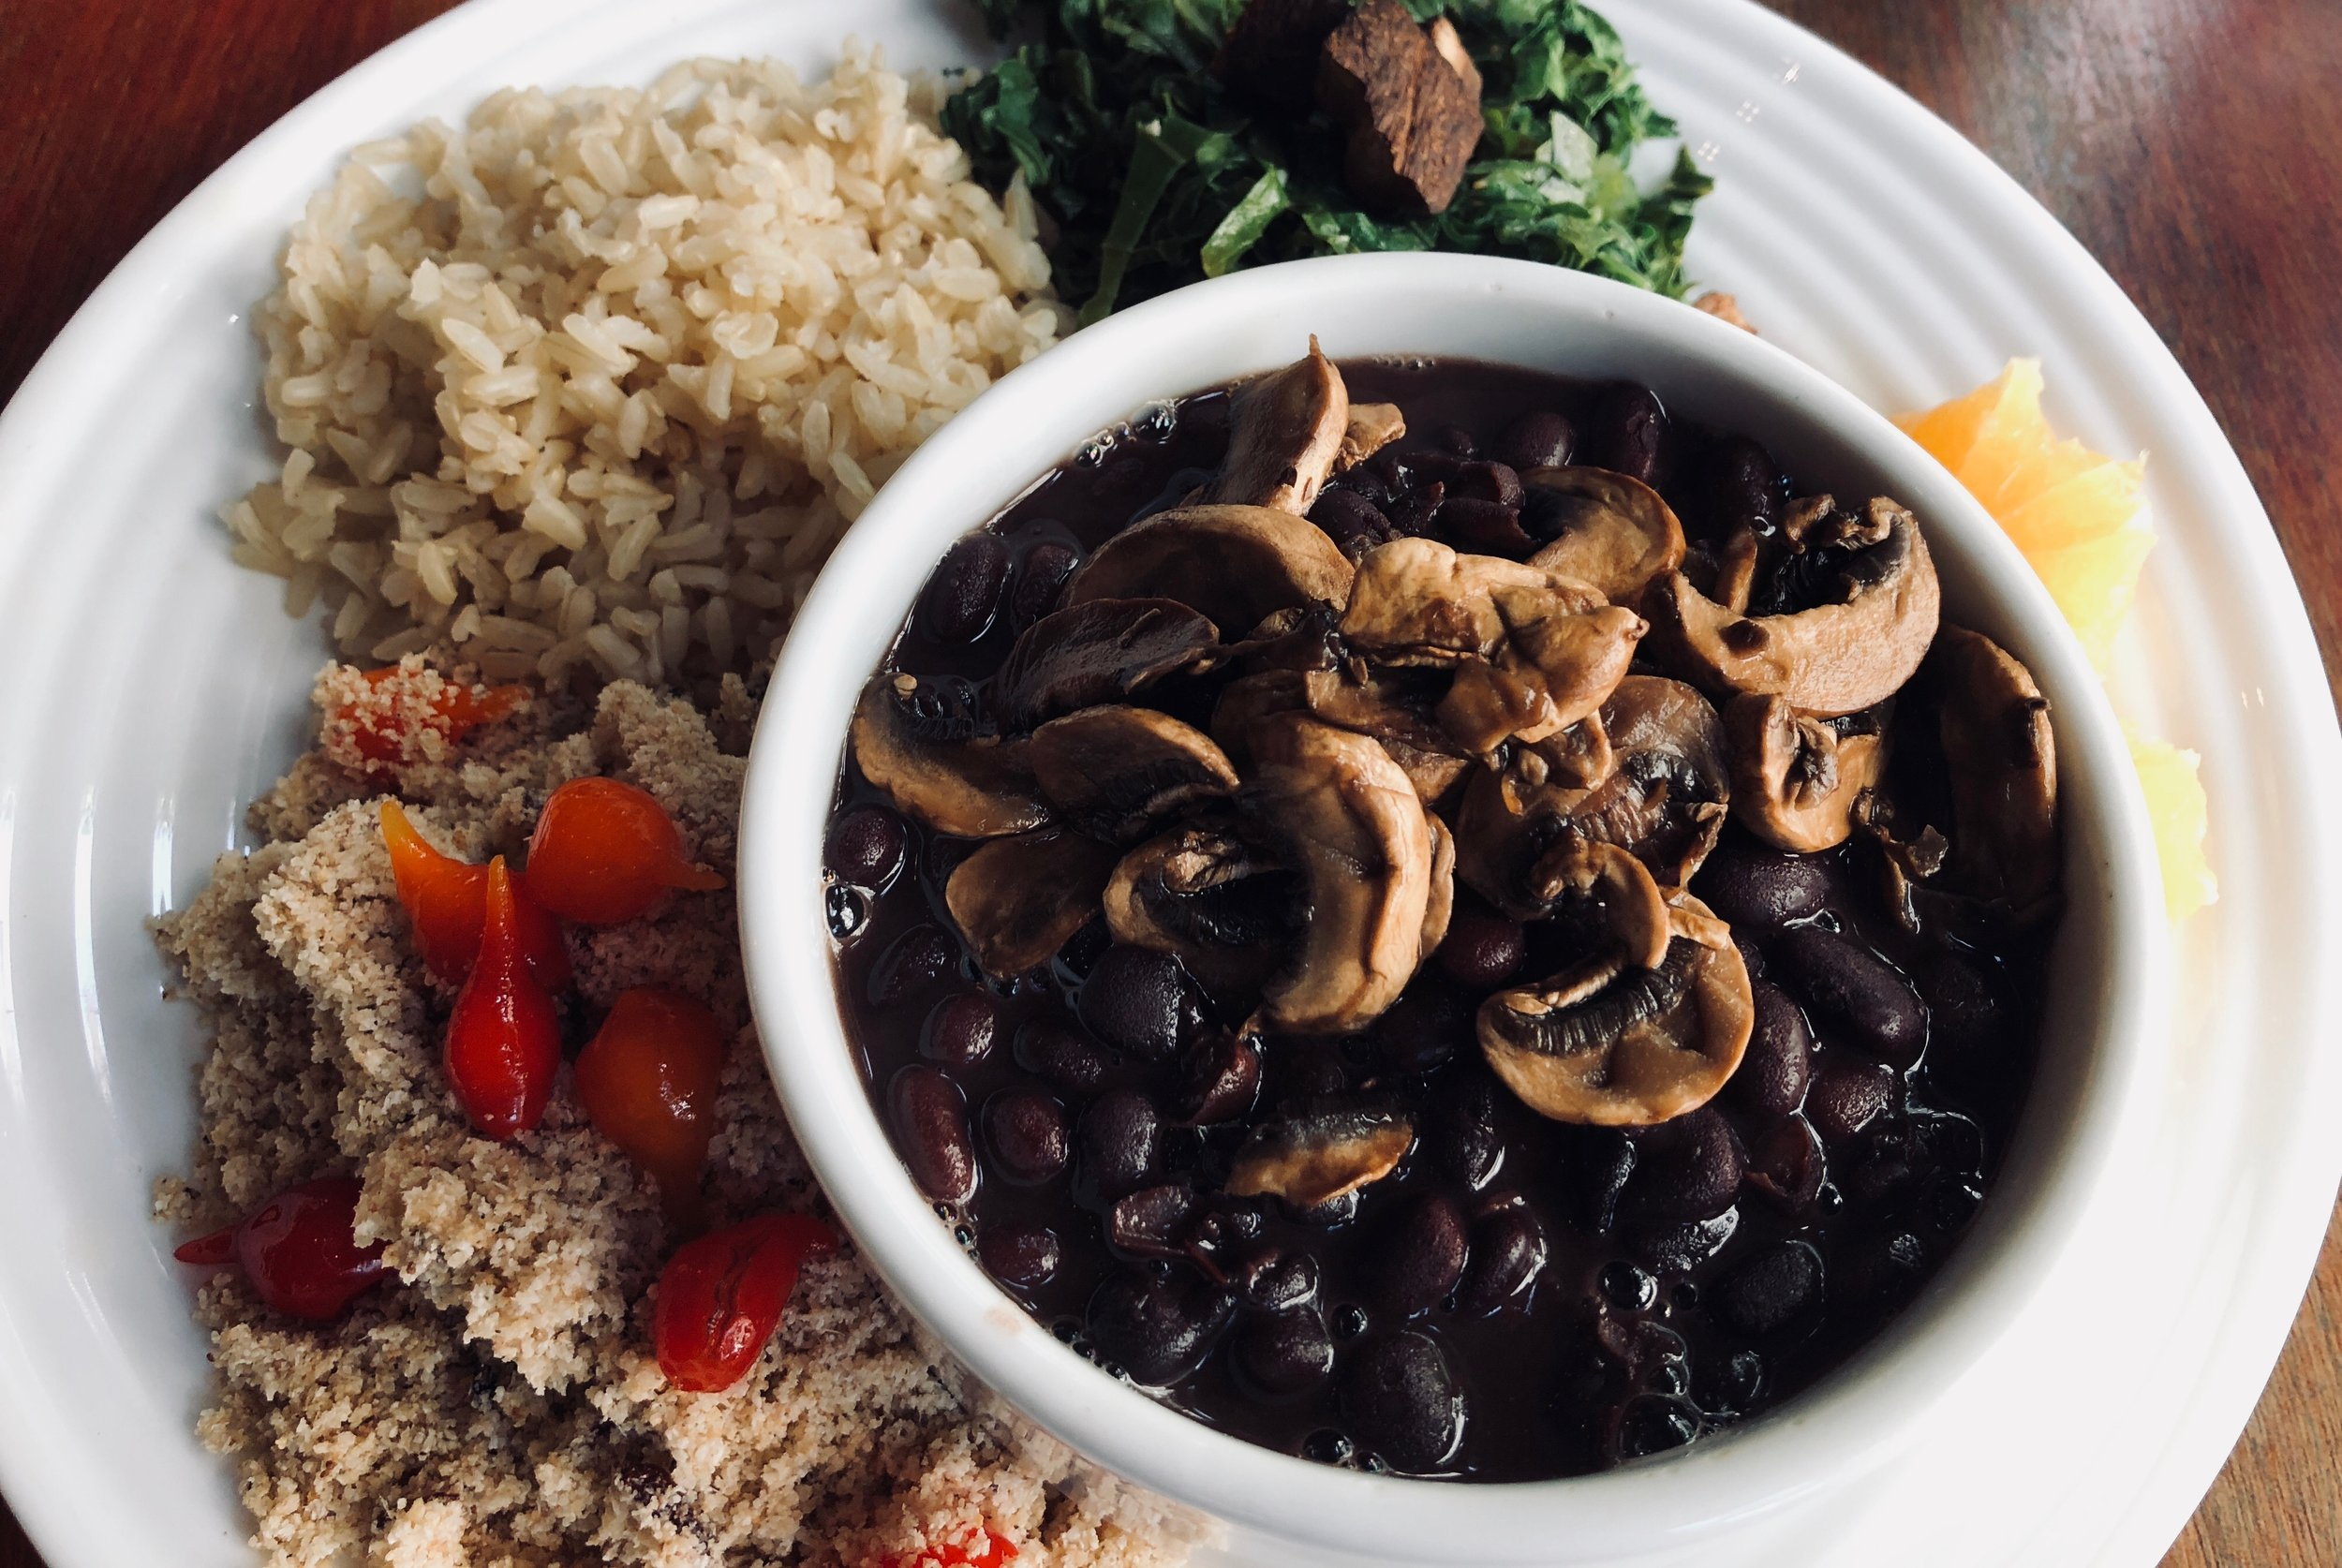 The vegan version of the traditional Brazilian bean stew dish - feijoada